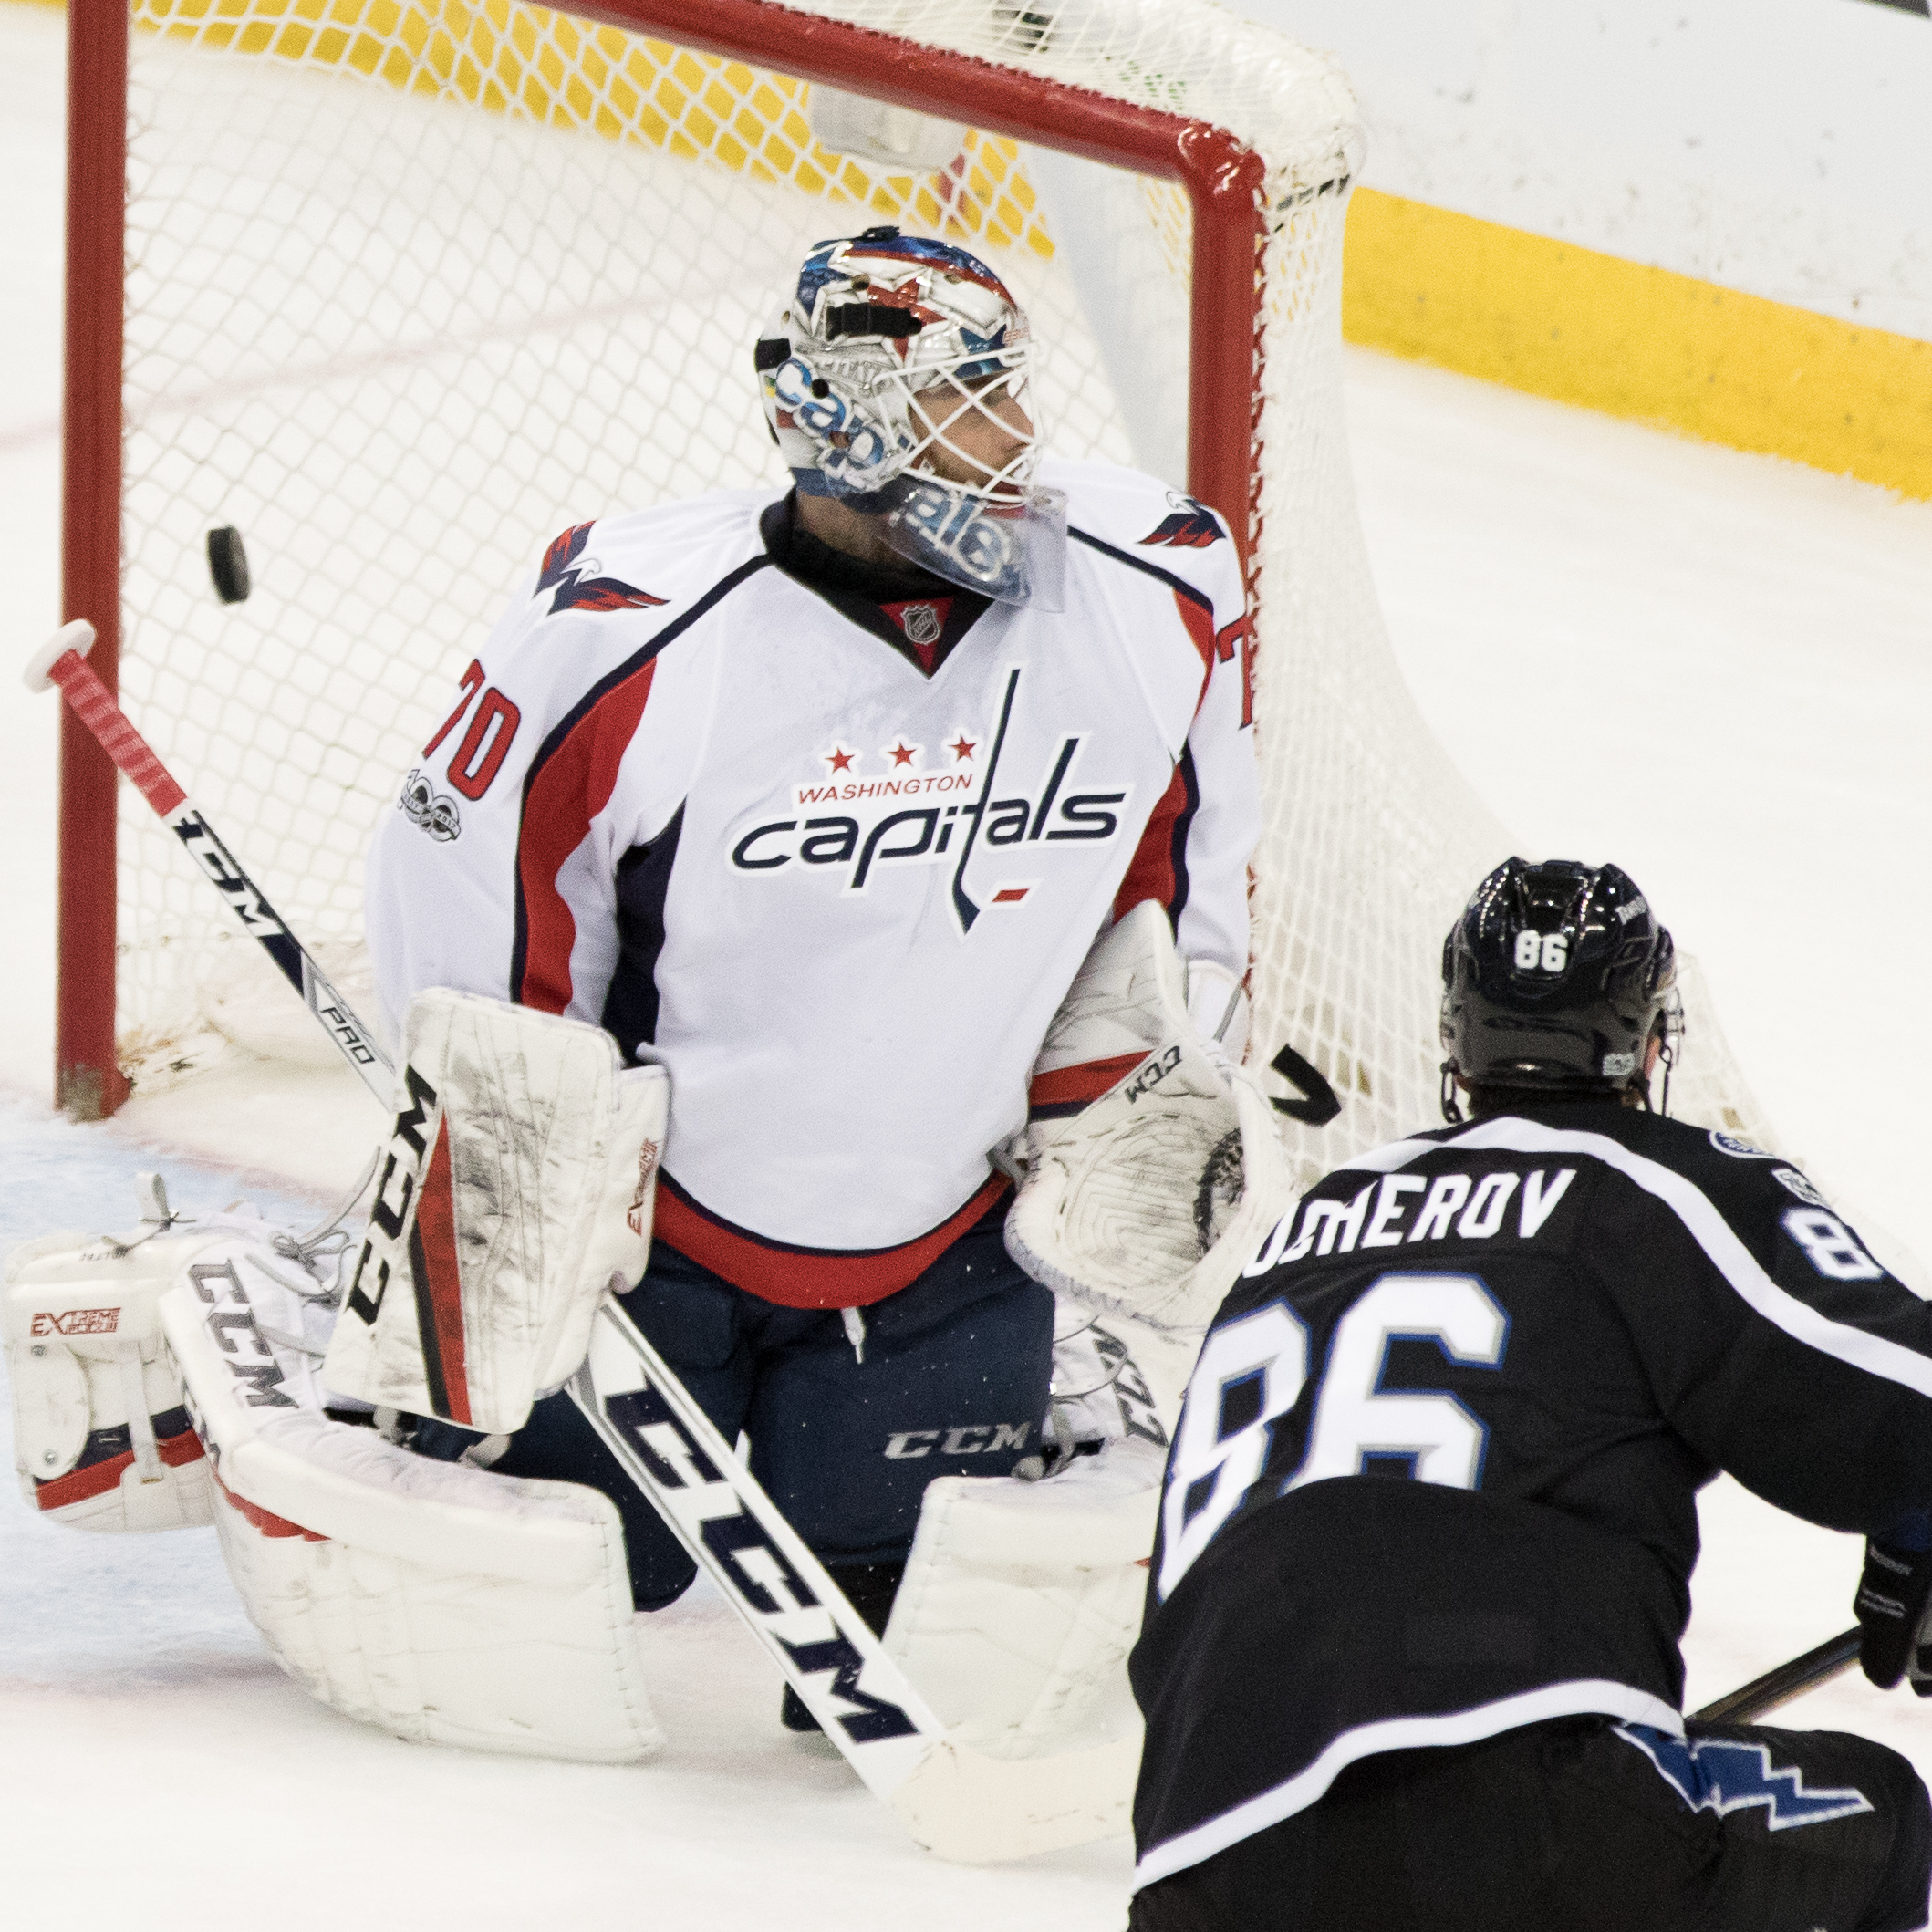 Nikita Kucherov gets one past Holtby to score for the bolts./Steven Muncie